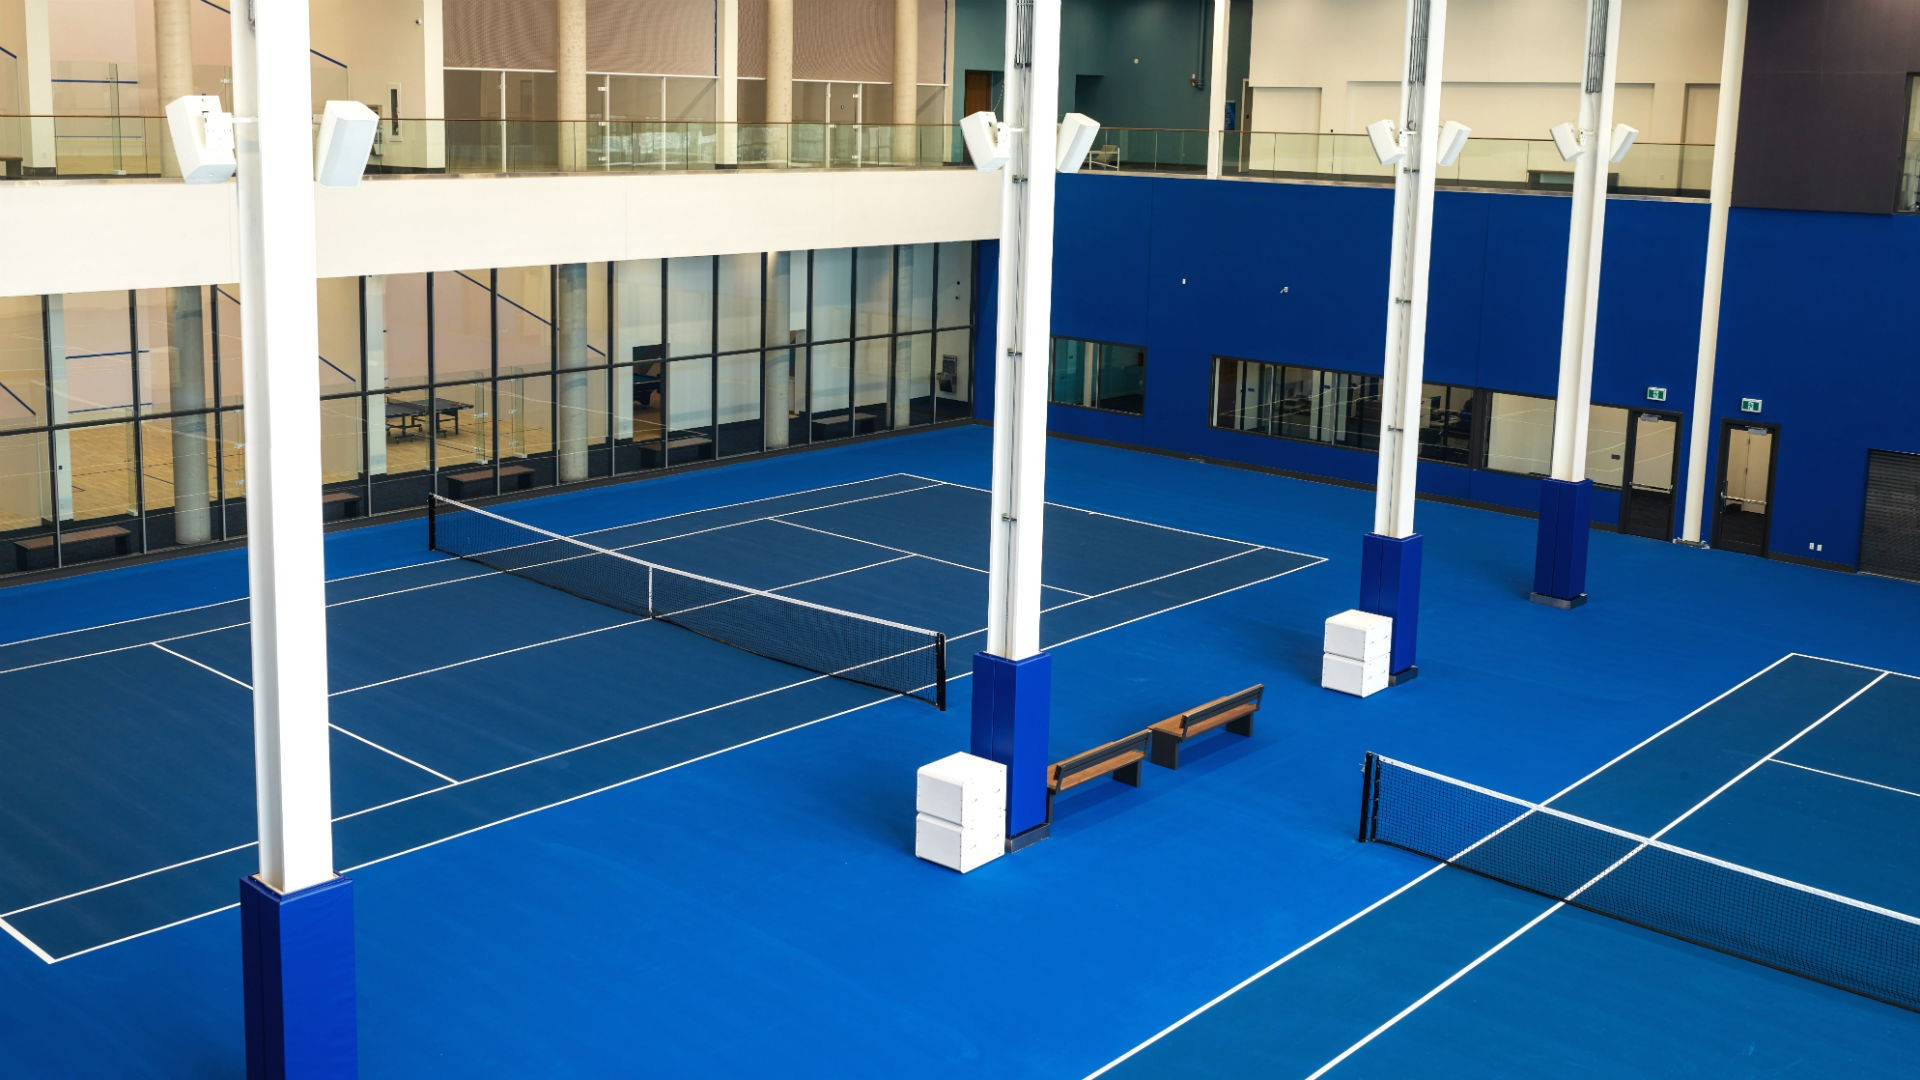 Best hotels Toronto staycation | Hotel X on-site indoor tennis courts